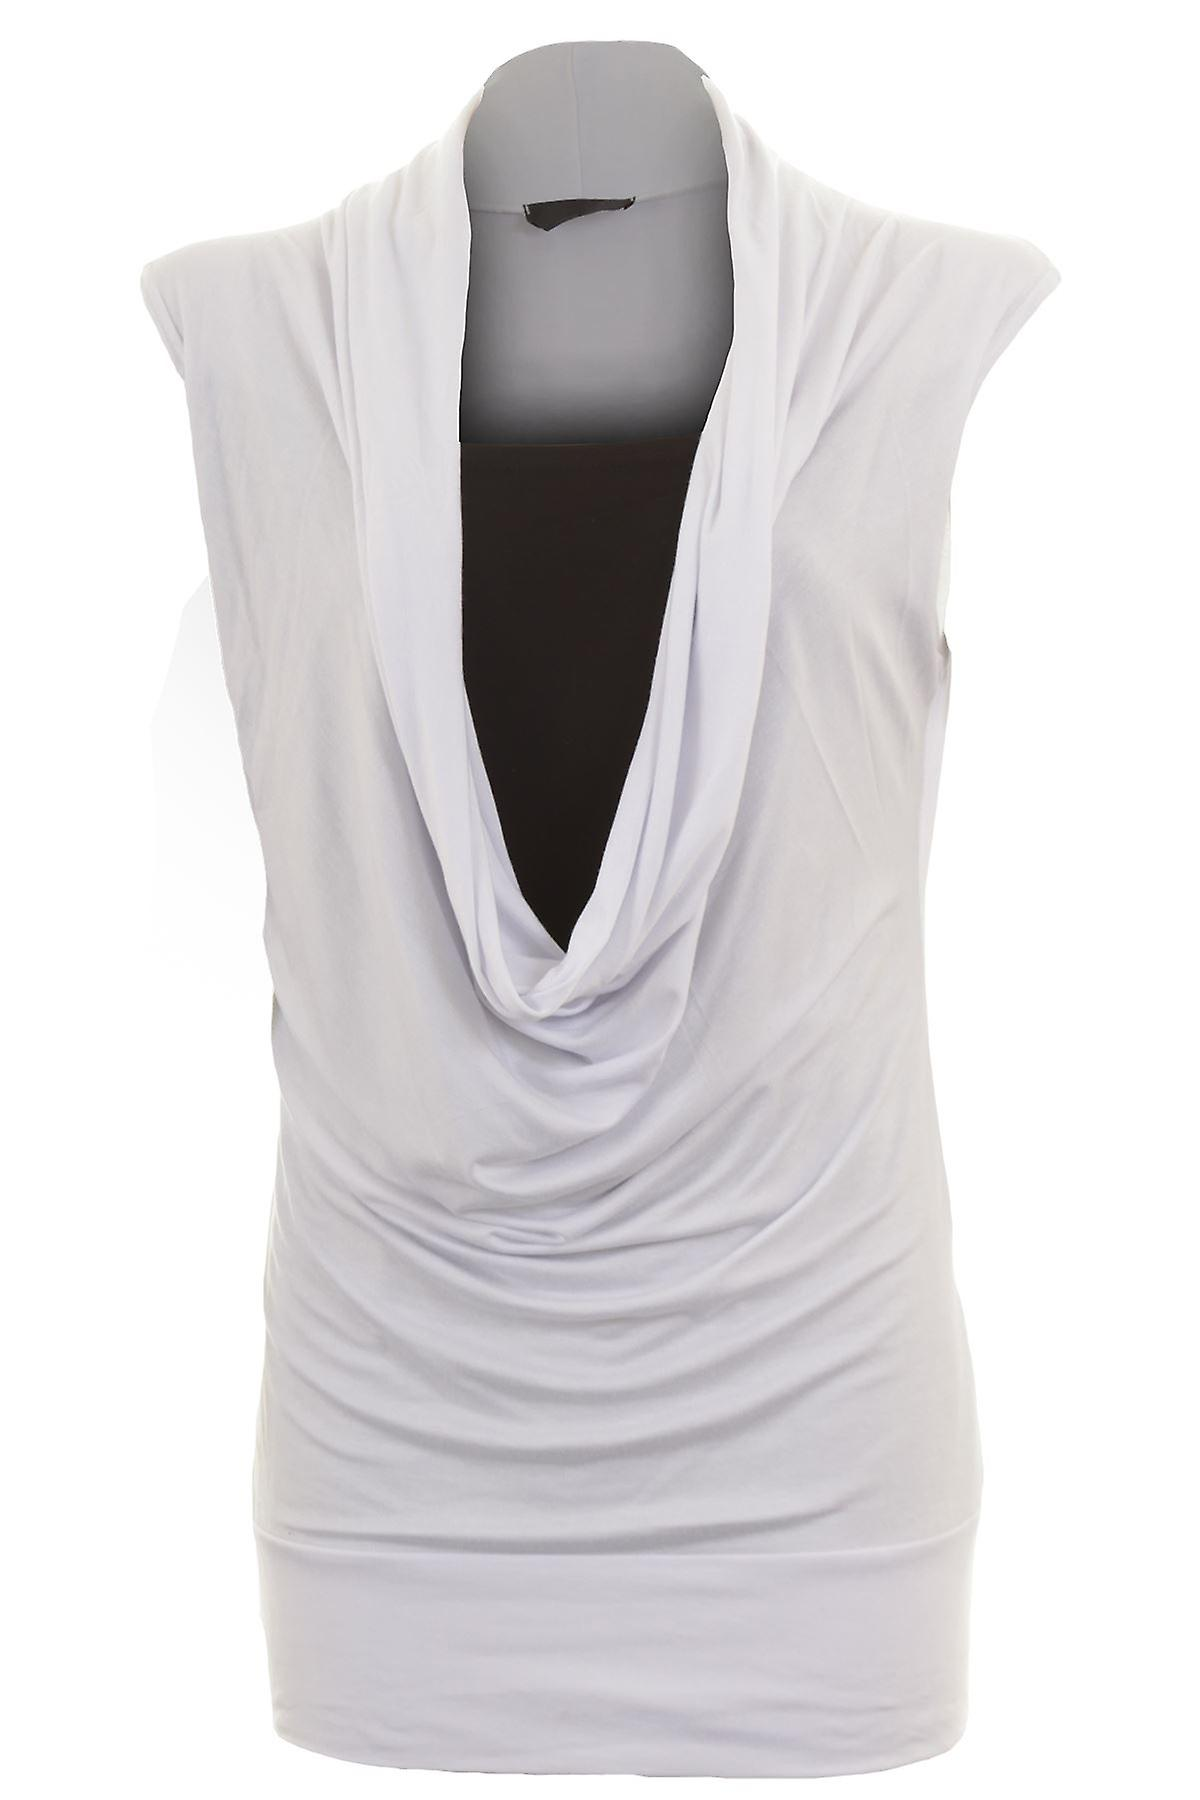 Ladies Gathered Cowl Neck Stretch Sleeveless Long Women's Plus Size top